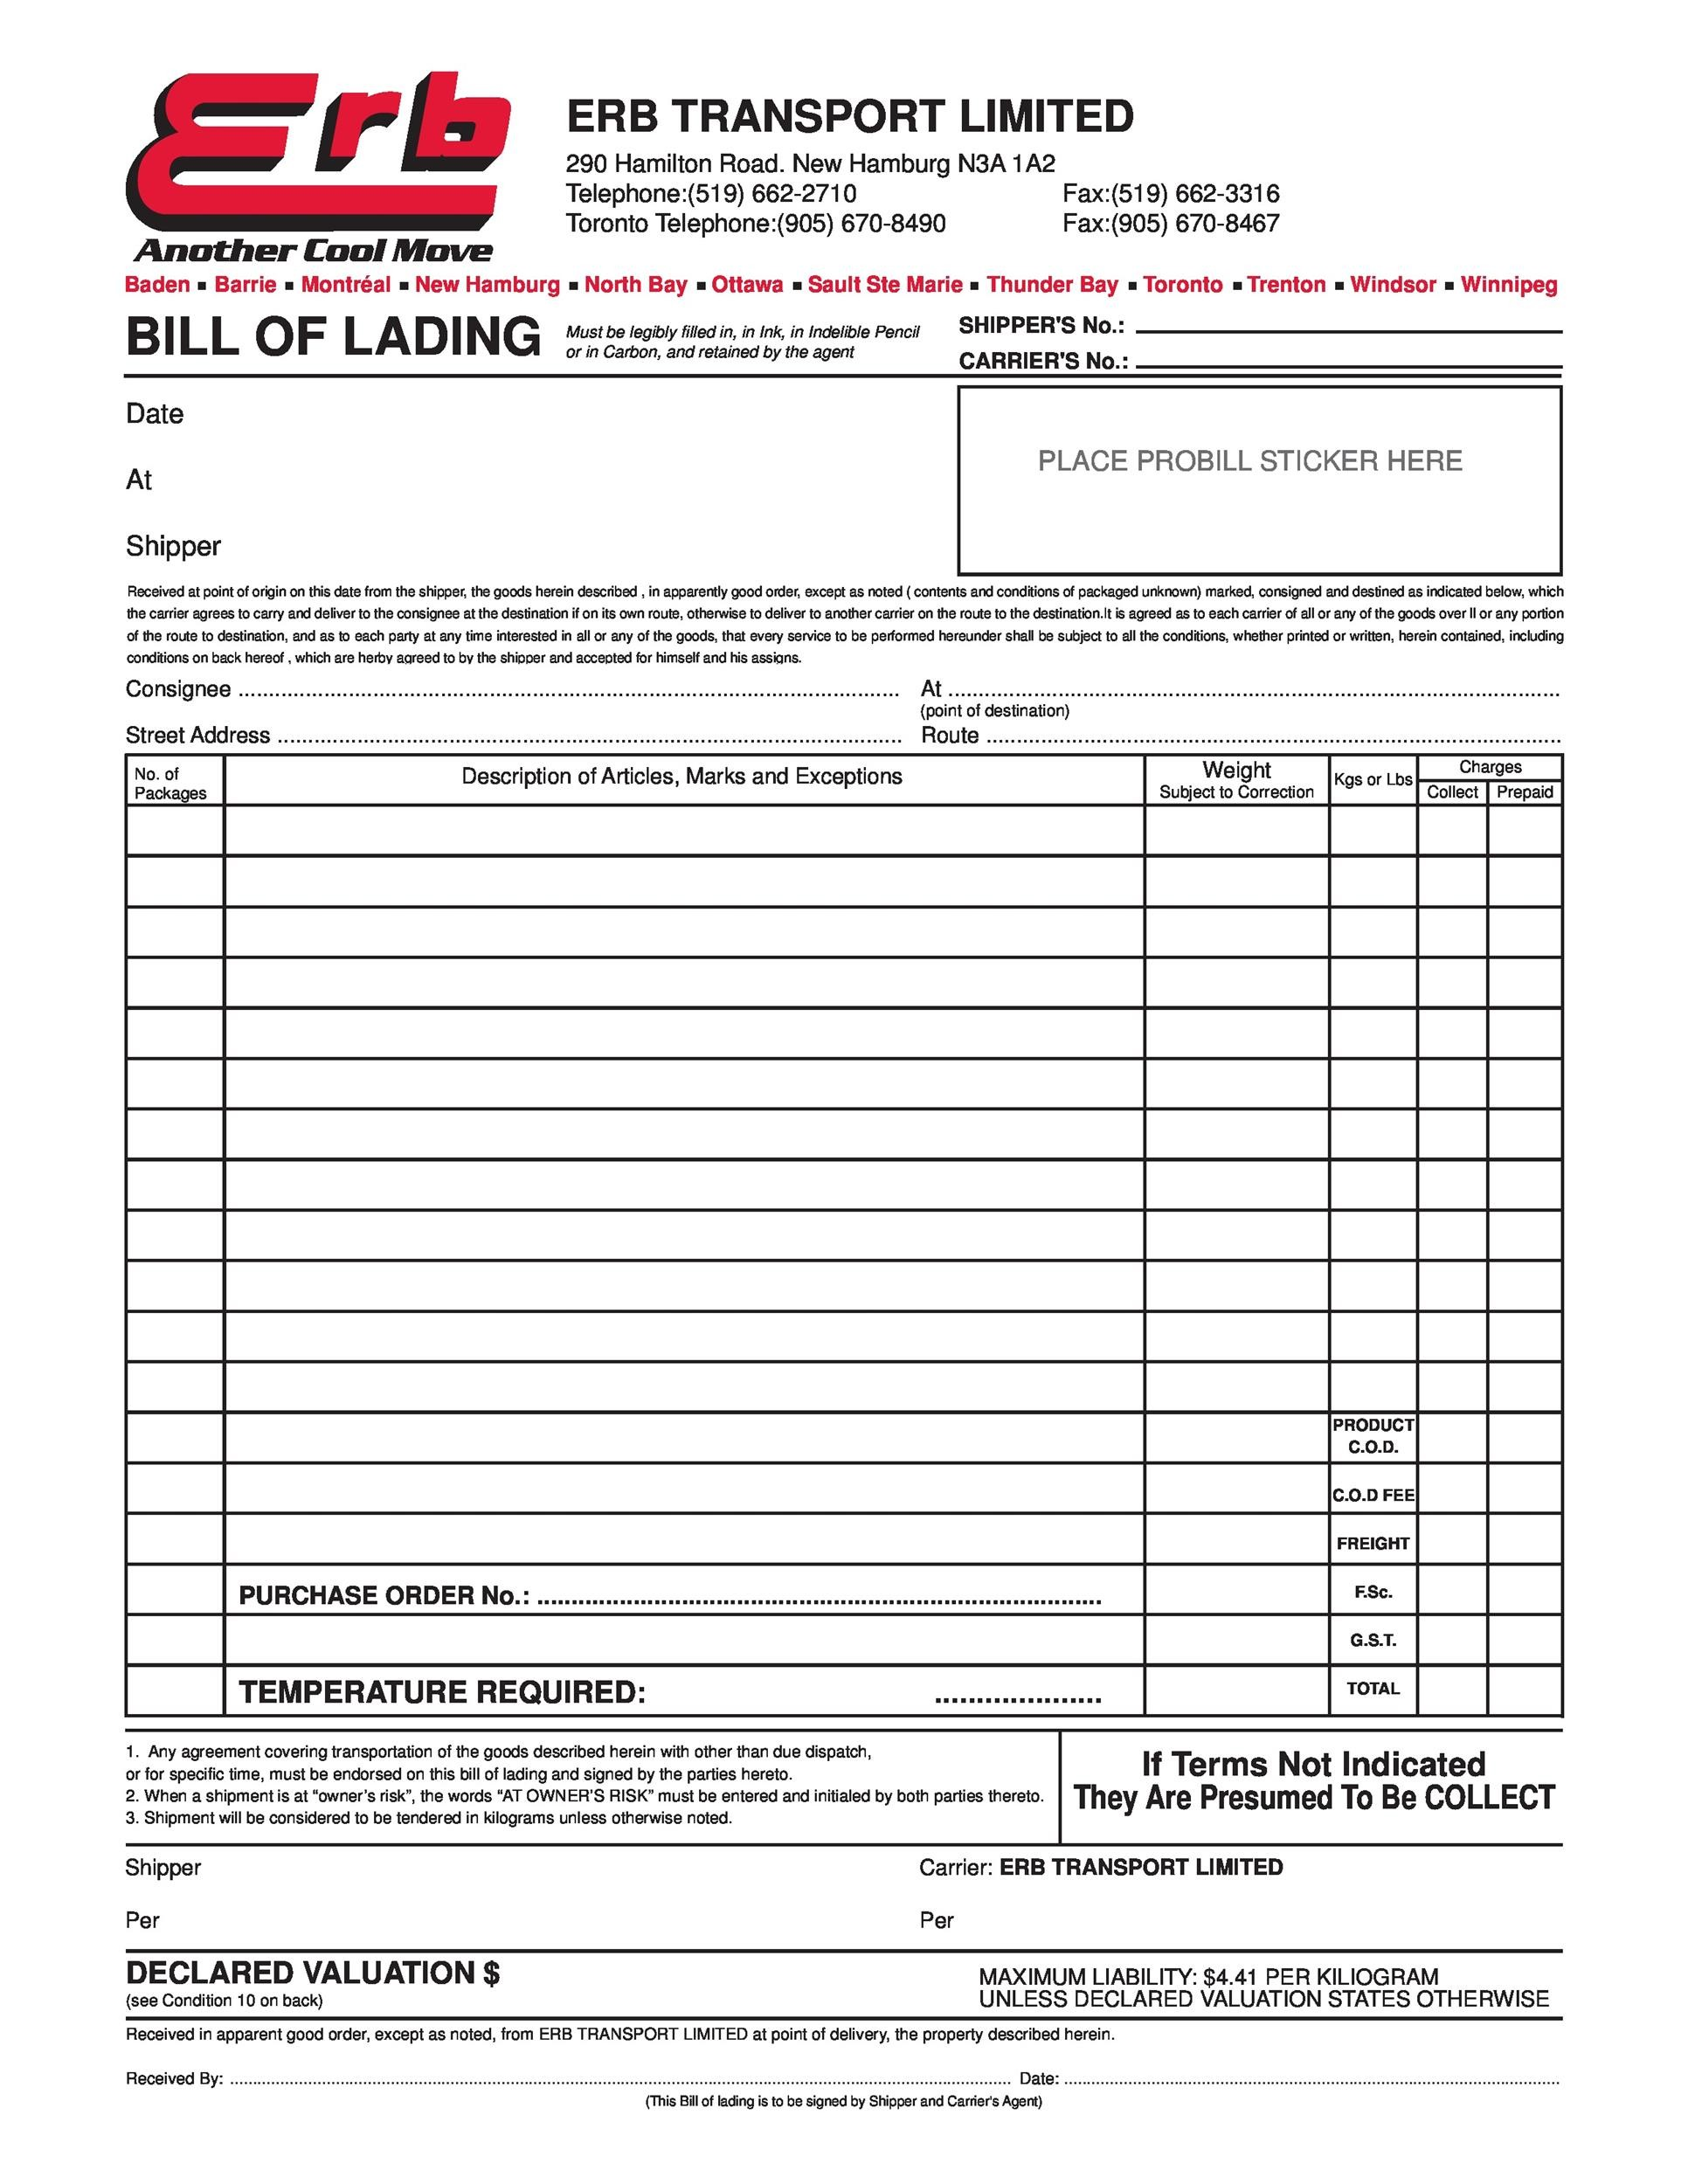 Free Bill of lading 28